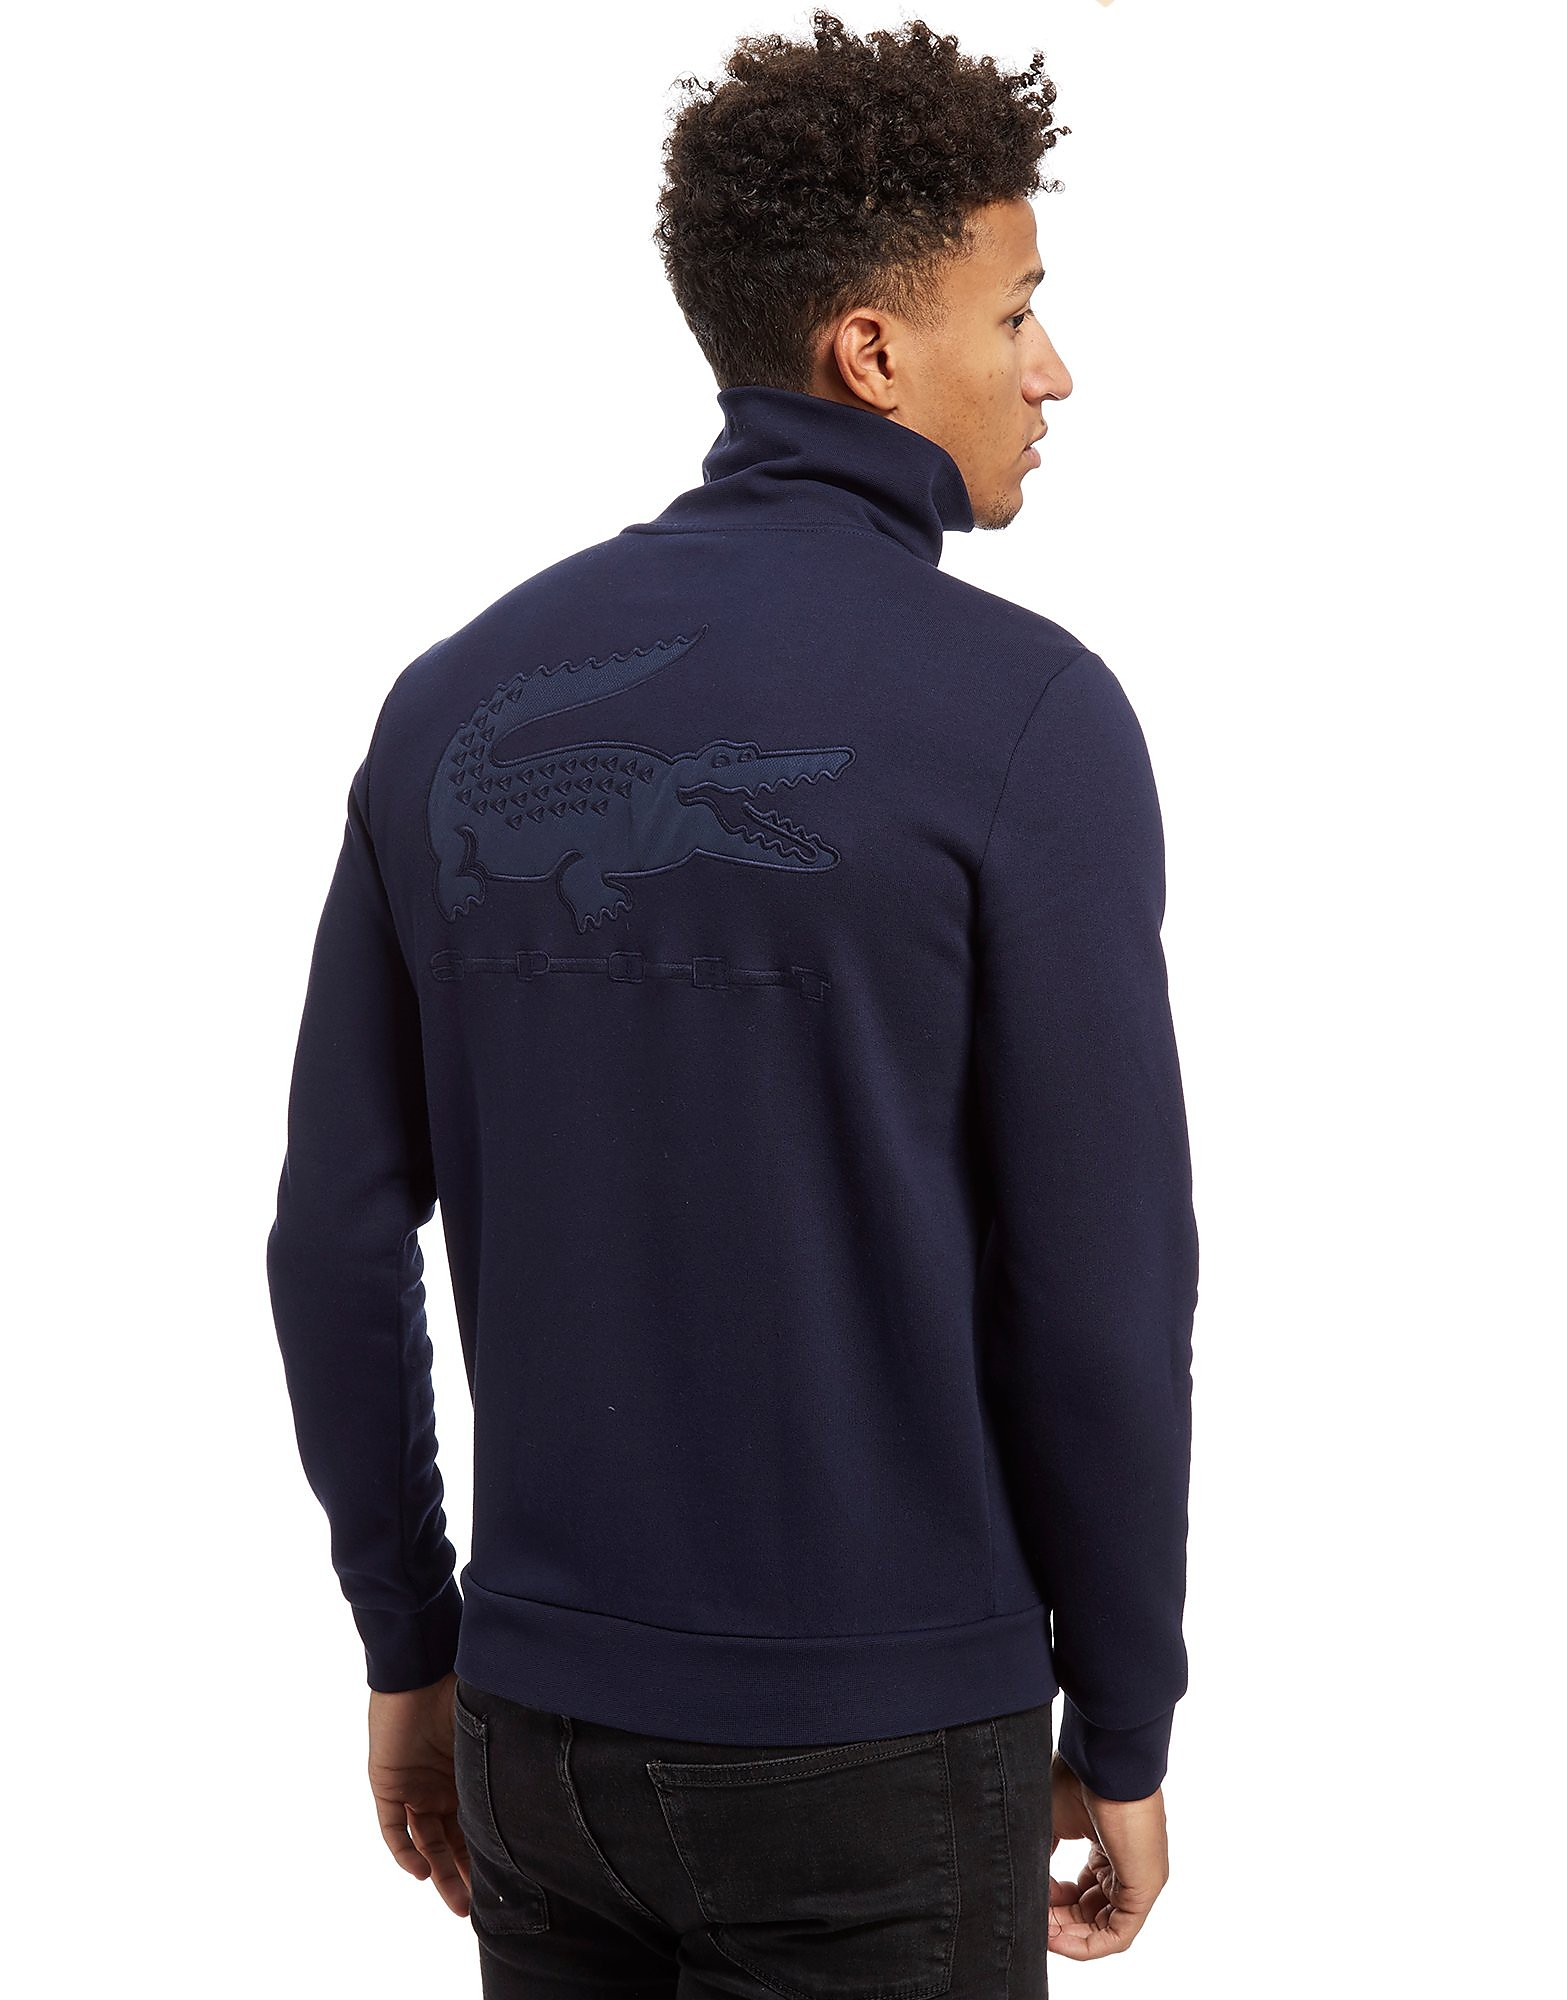 Lacoste Novak Djokovic Track Top